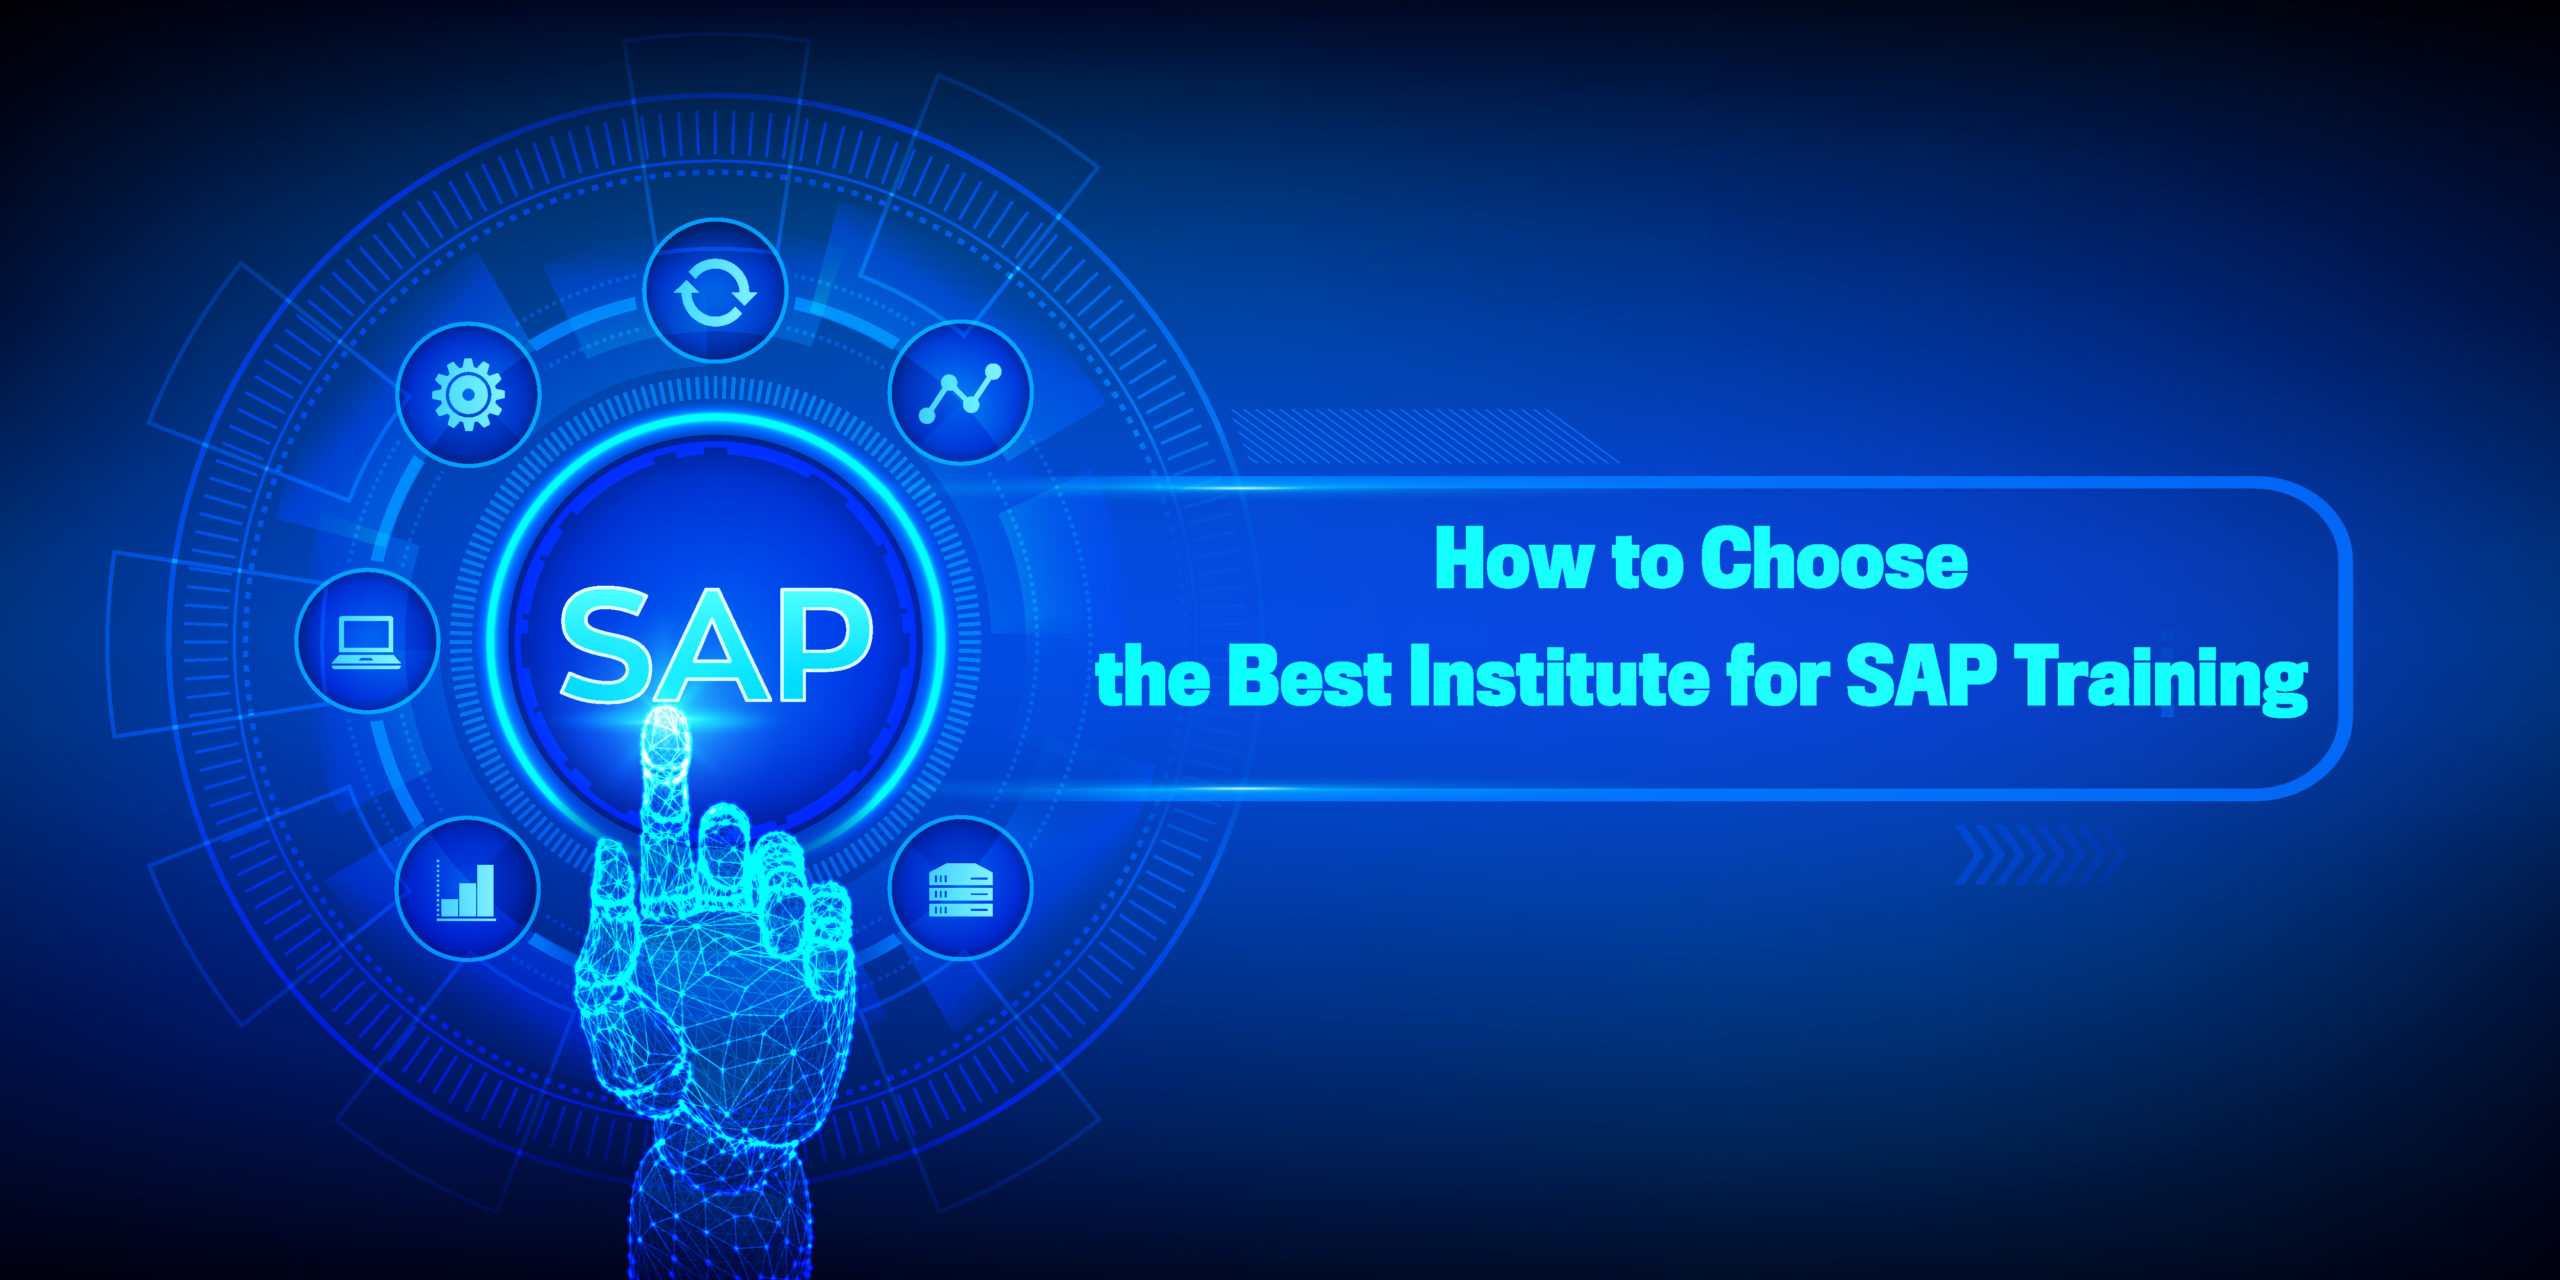 How to Choose the Best Institute for SAP Training